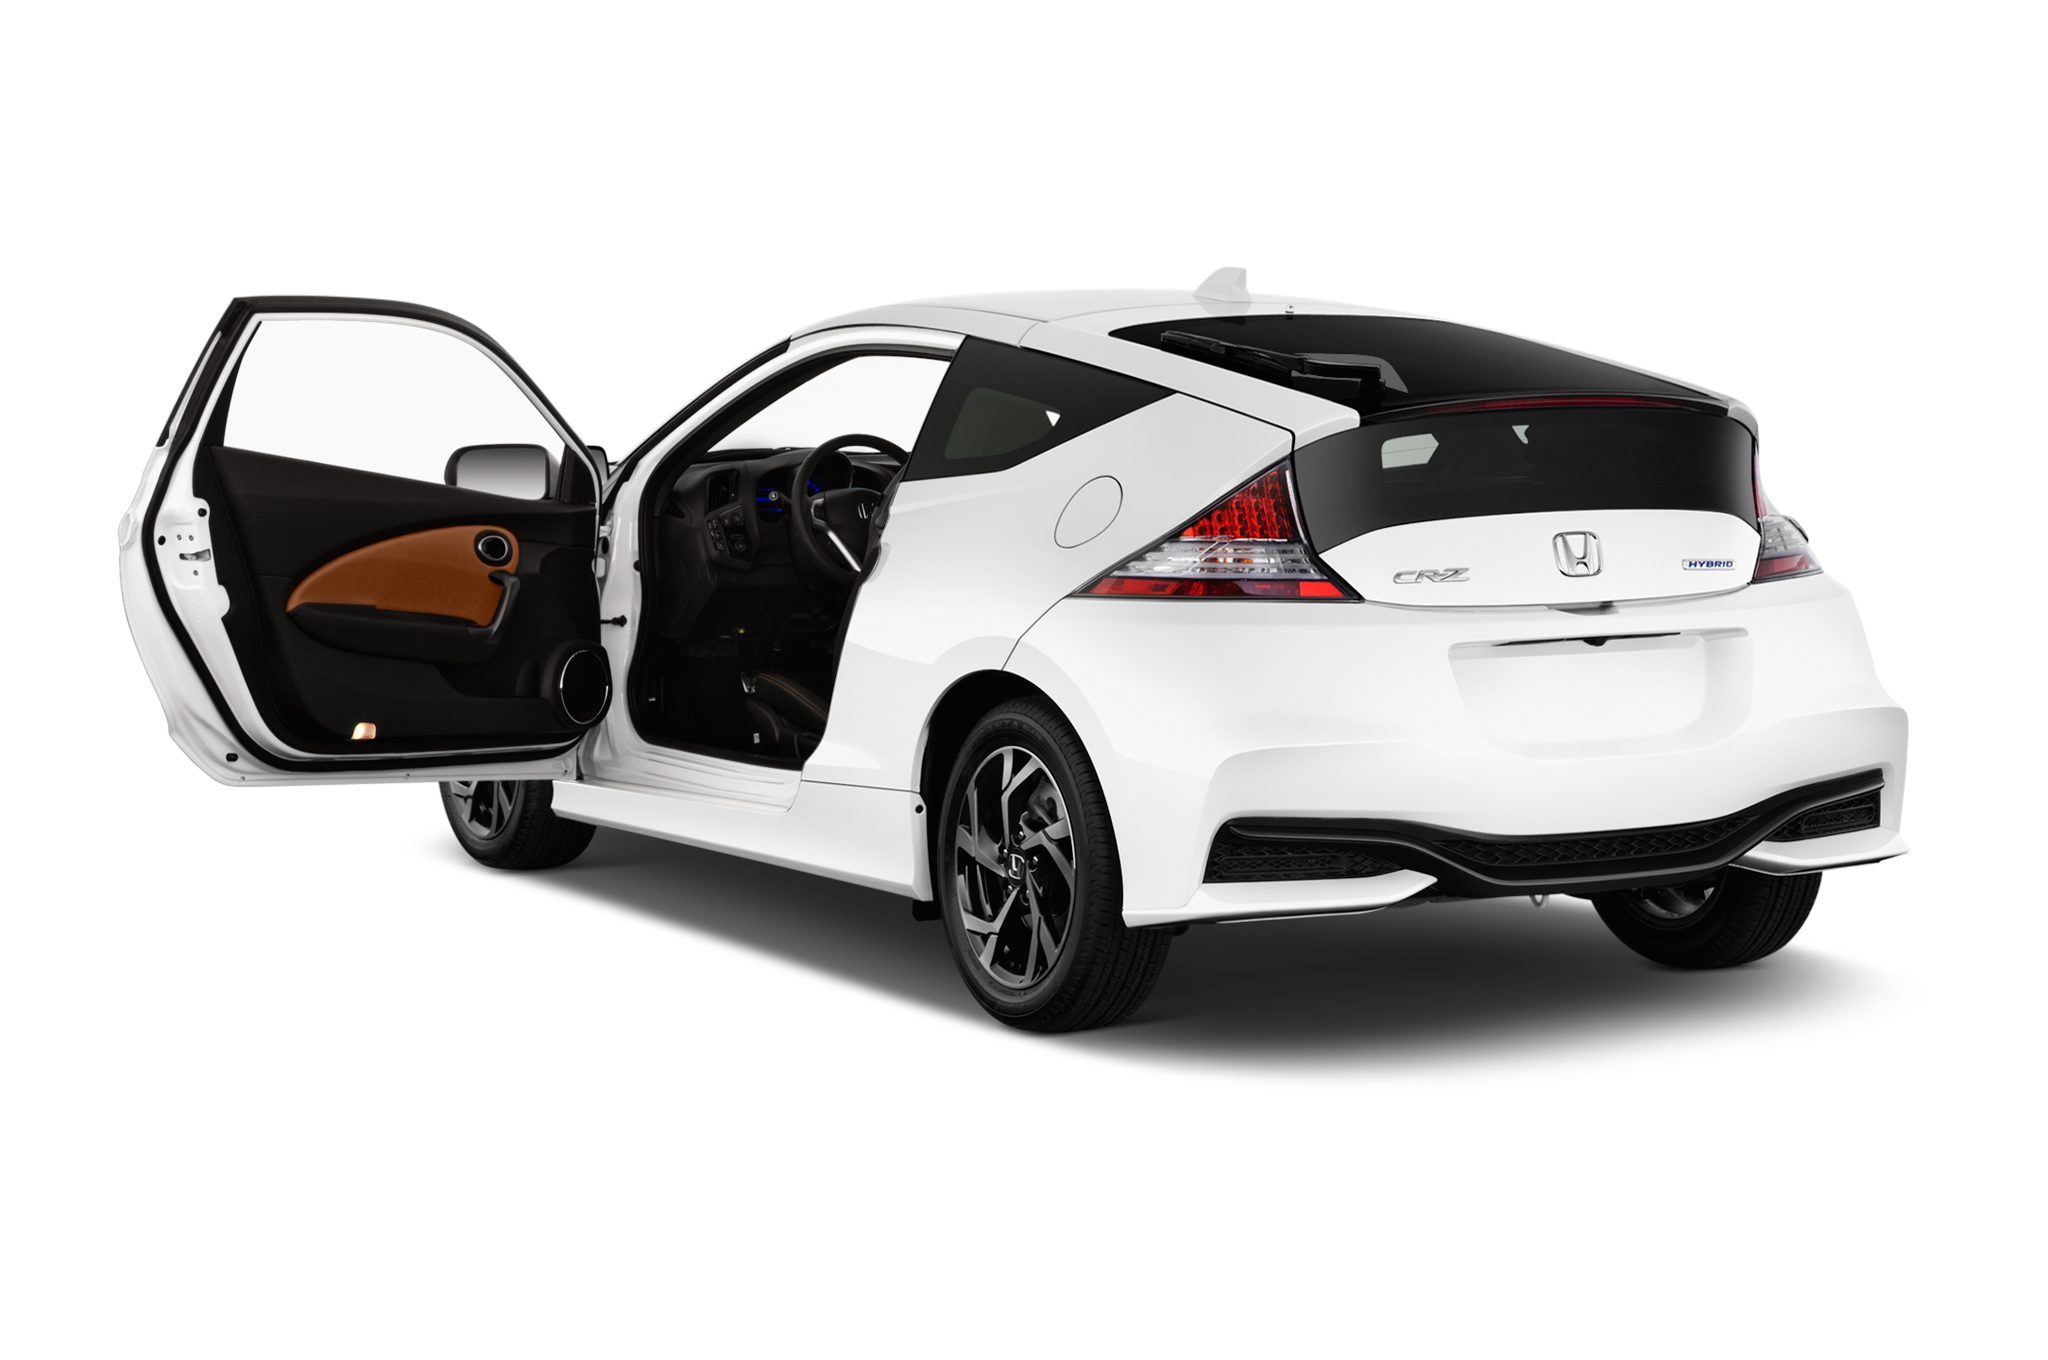 honda cr z alpha final label edition released in japan automobile magazine. Black Bedroom Furniture Sets. Home Design Ideas